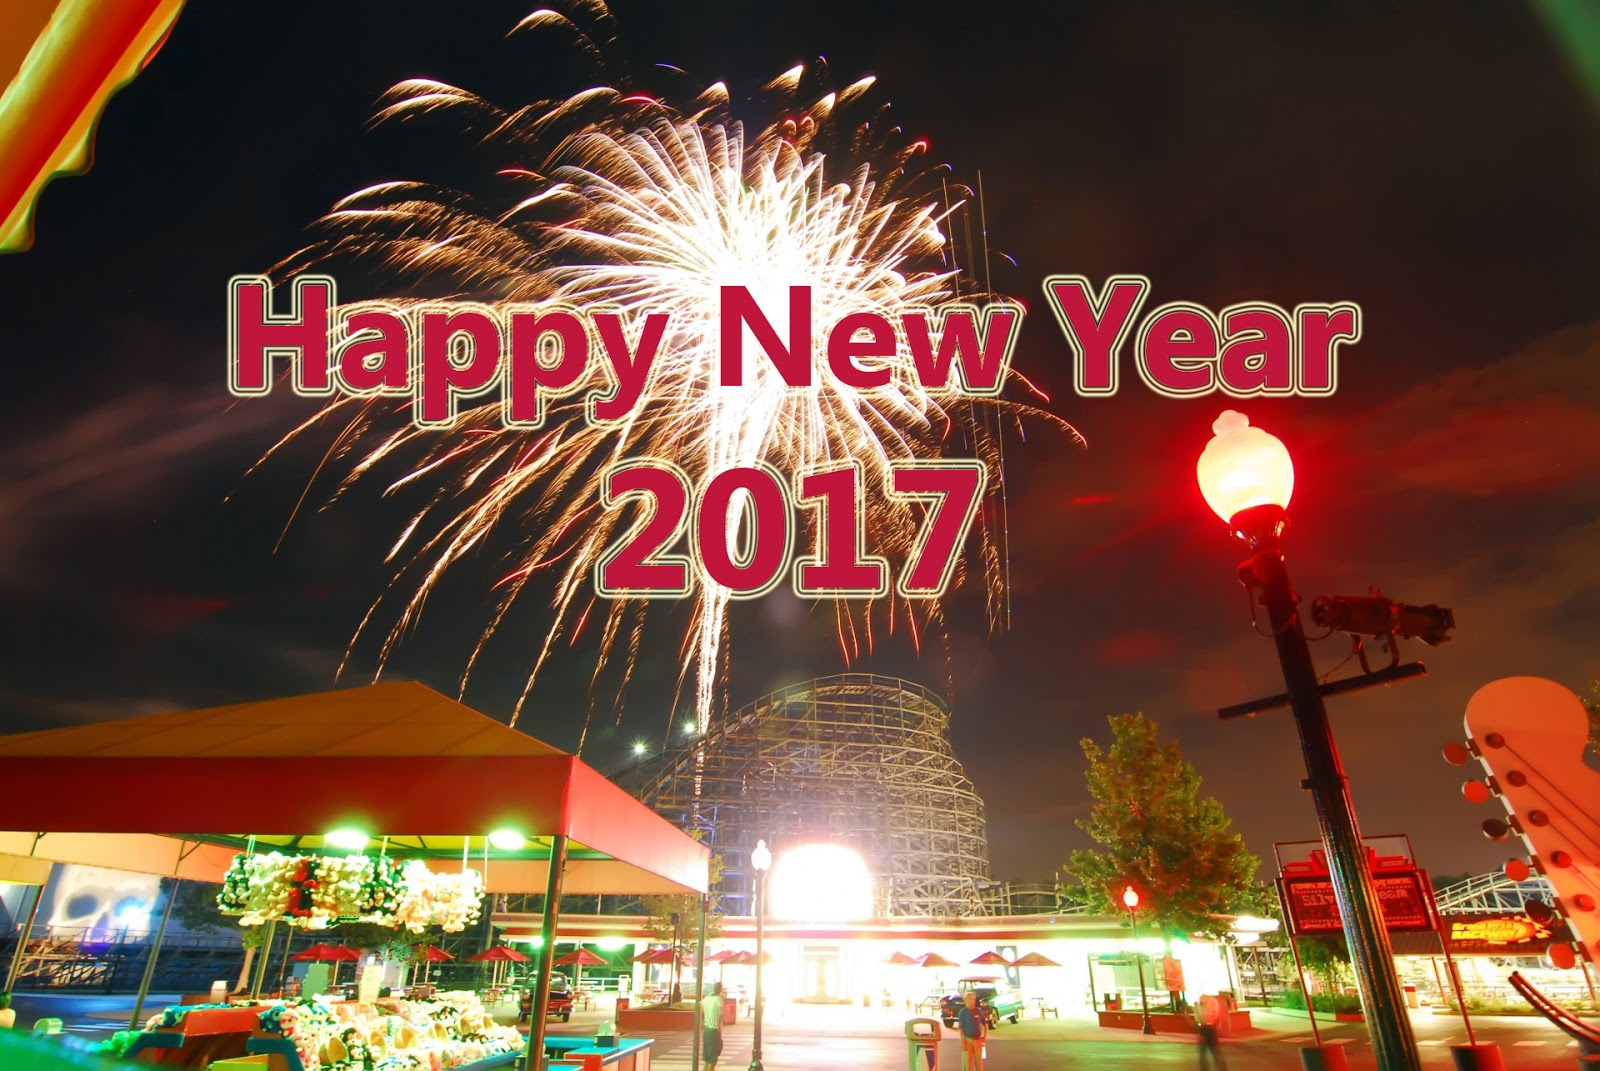 New Year 2017 Hd Wallpaper: Happy New Year 2017 Wallpapers HD